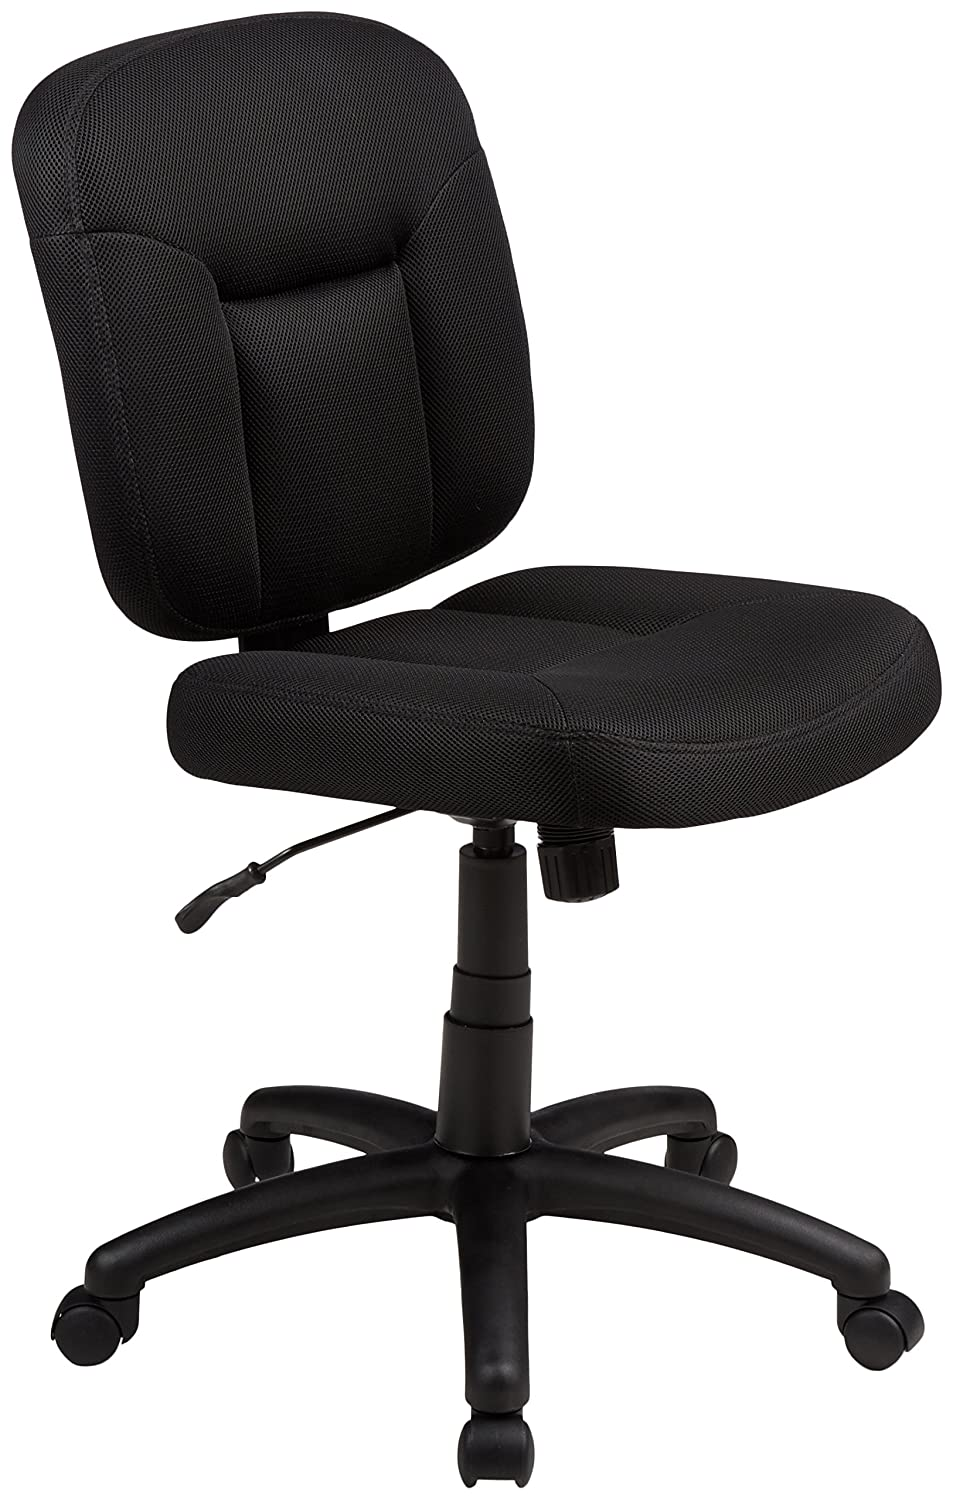 Best office chair 2016 - Ergonomic Task Chair Upholstered In Black Fabric